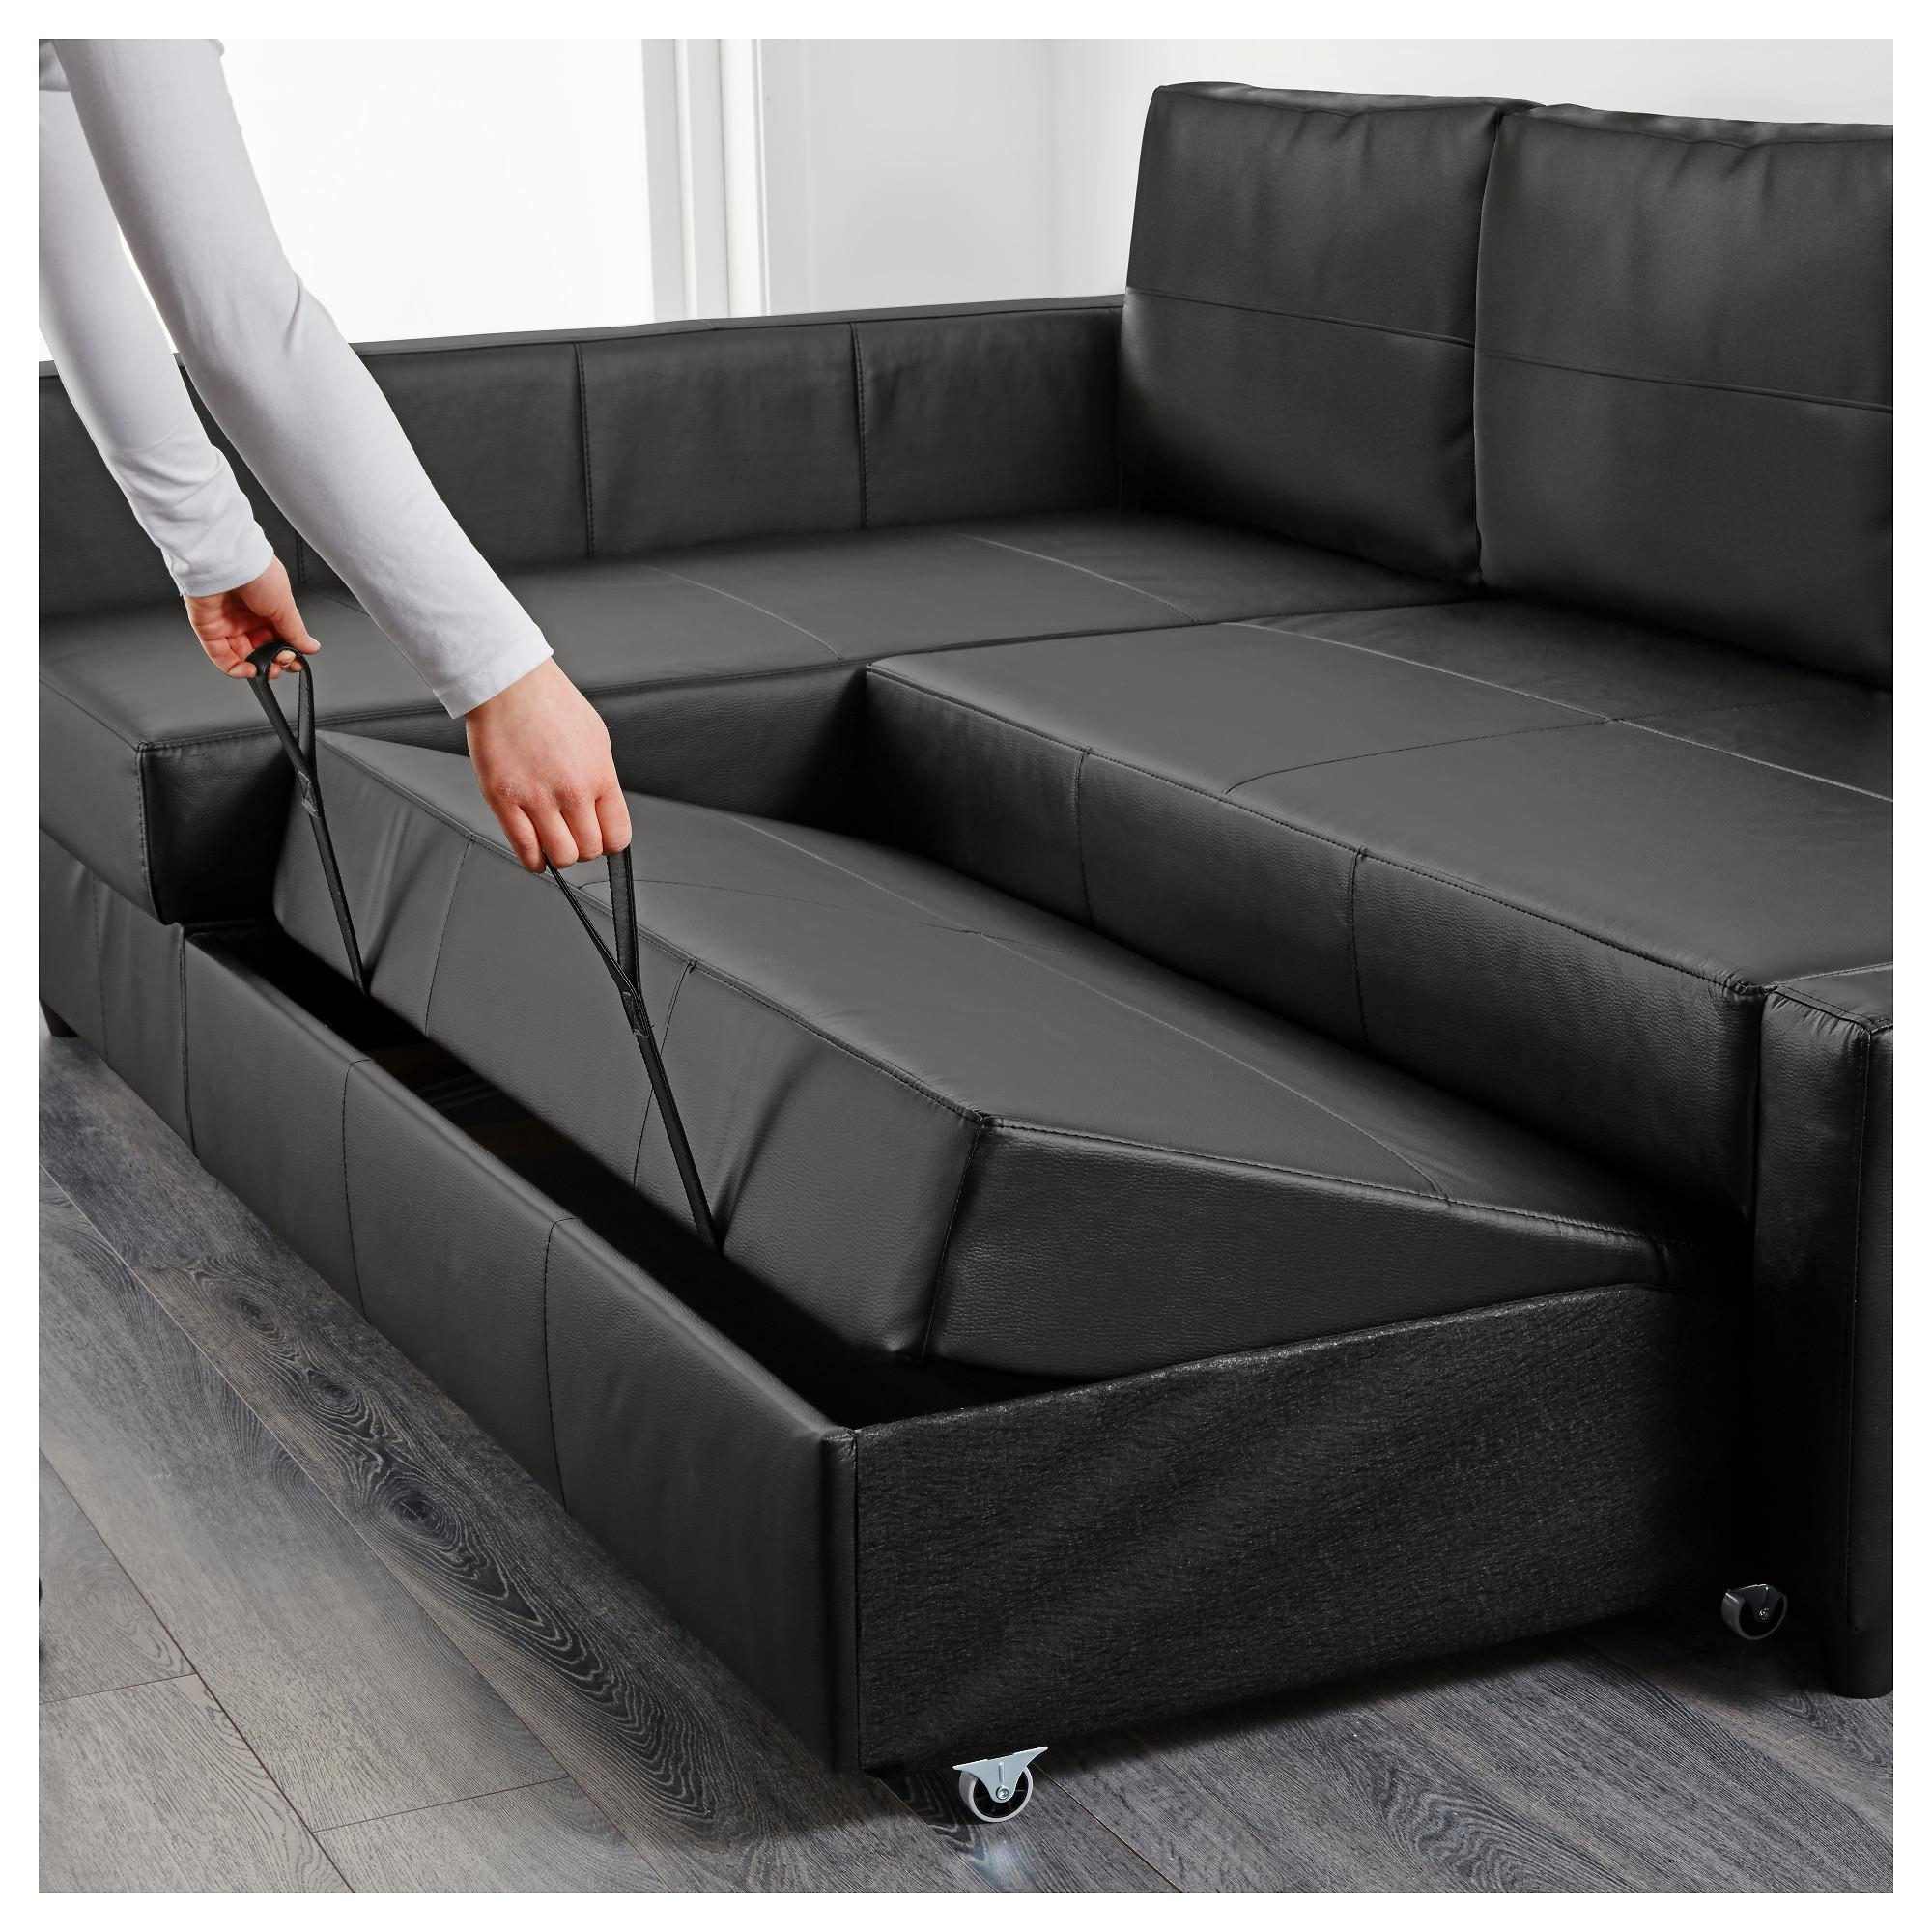 Friheten Sleeper Sectional,3 Seat W/storage – Skiftebo Dark Gray For Storage Sofas Ikea (Image 16 of 20)